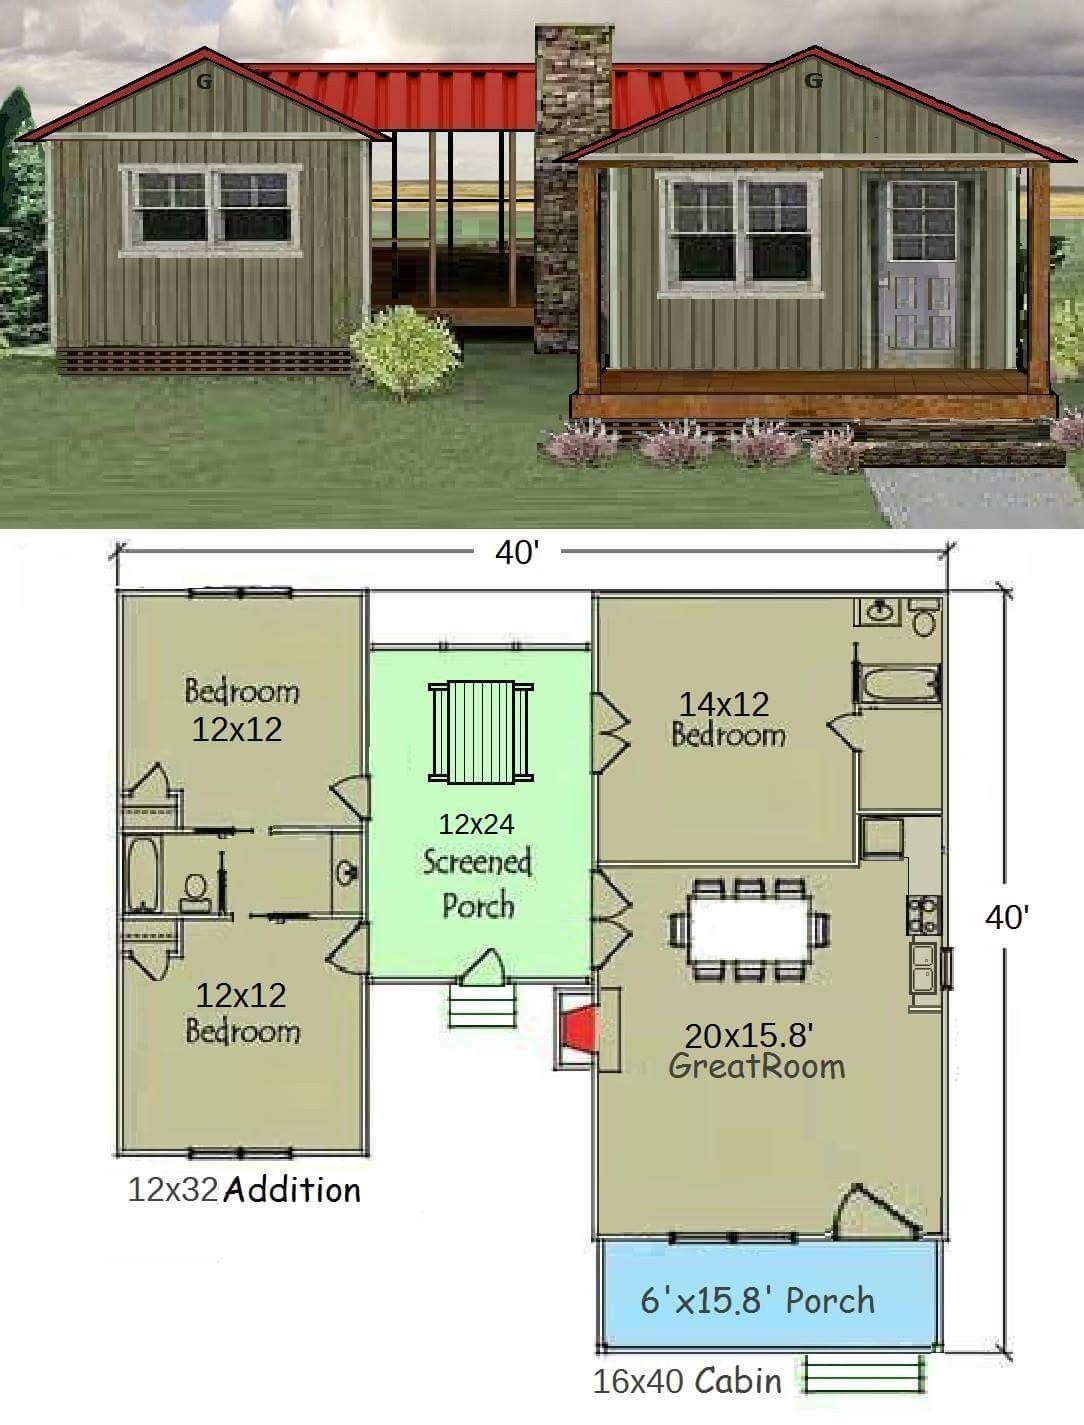 Calcul De Infinity Juste Un Autre Site Wordpress Tiny House Cabin House Plans Shed With Porch